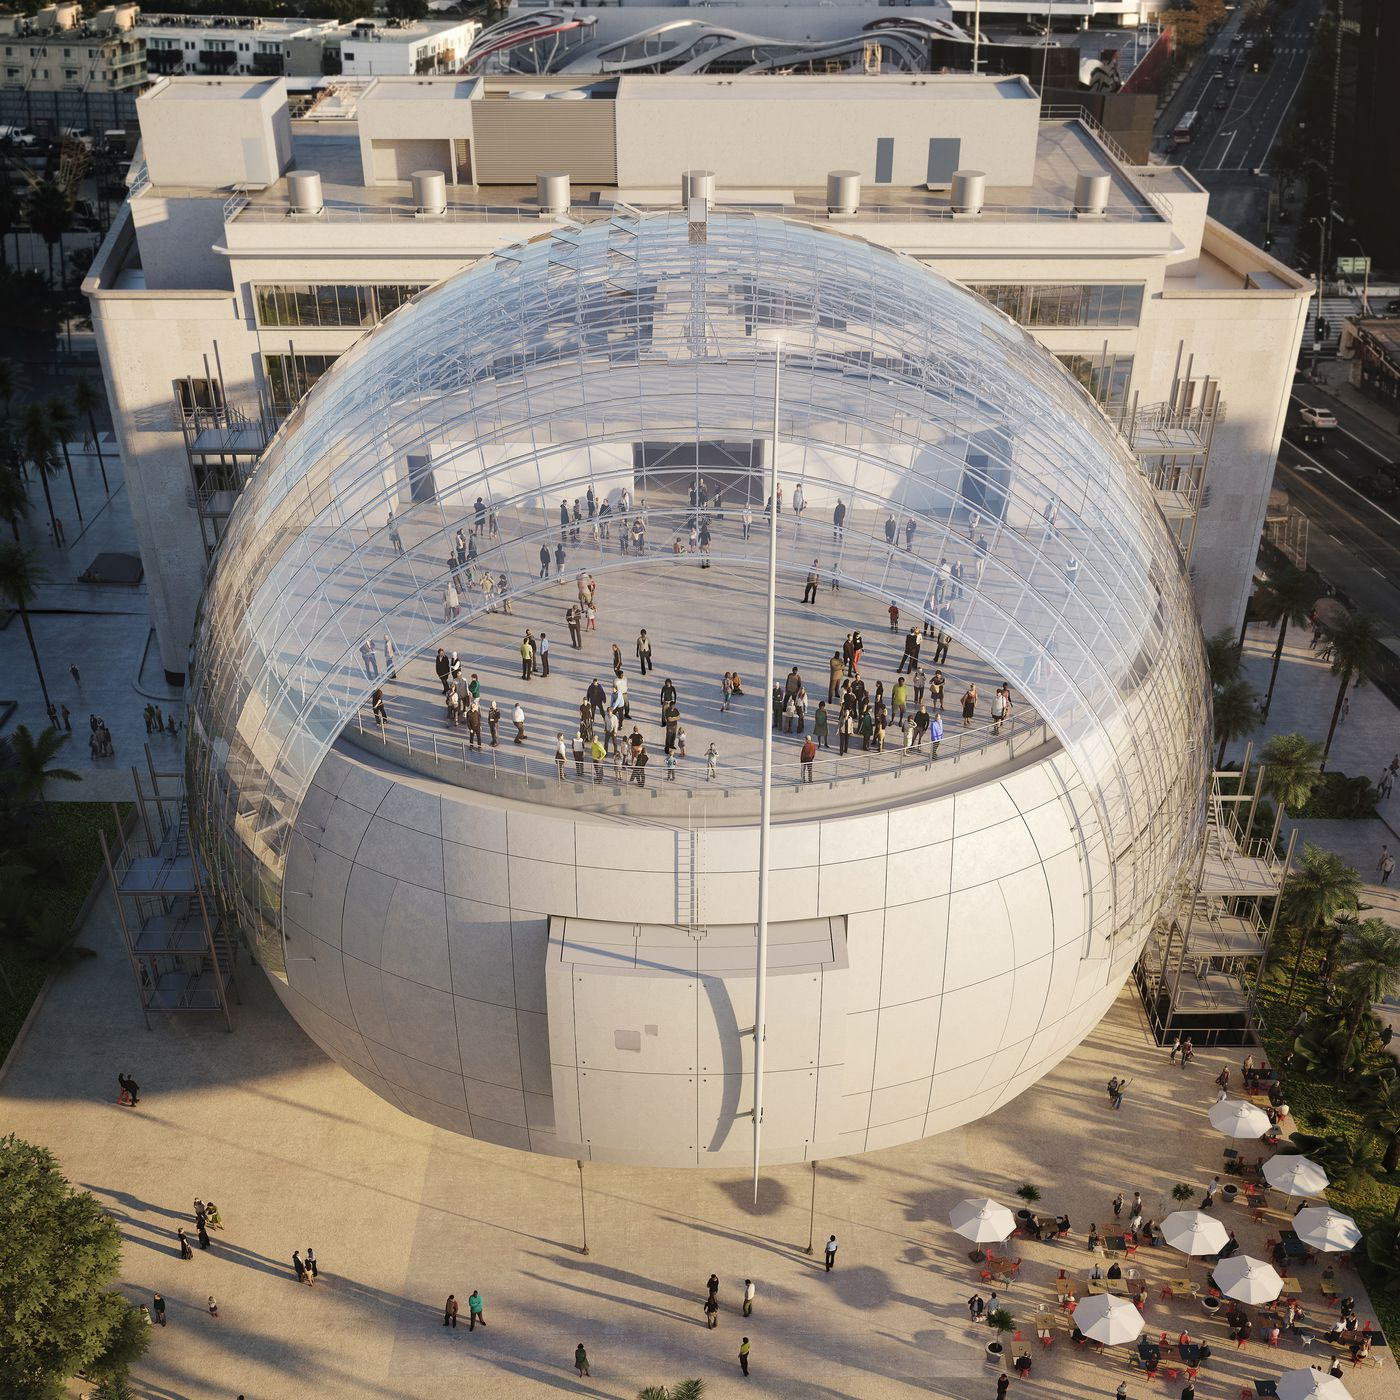 Aerial photograph of the Academy Museum opening in Los Angeles in 2019.